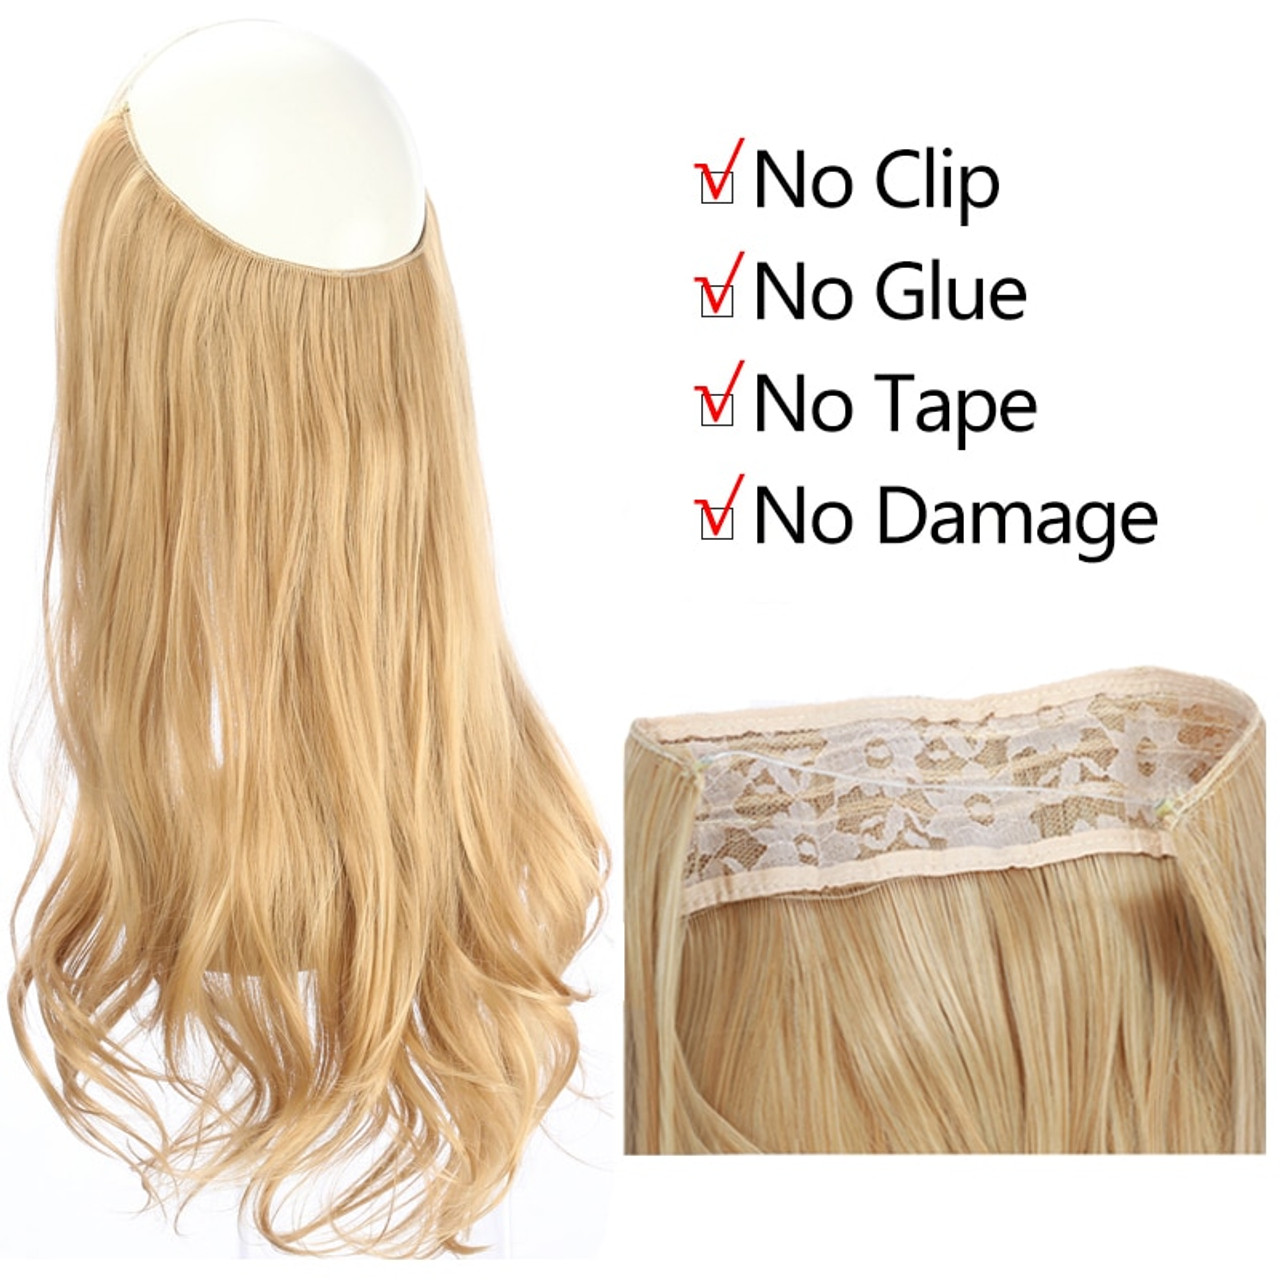 14 16 18 120g Wave Halo Hair Extensions Invisible Ombre Bayalage Synthetic Natural Flip Hidden Secret Wire Crown Grey Pink Synthetic Extensions